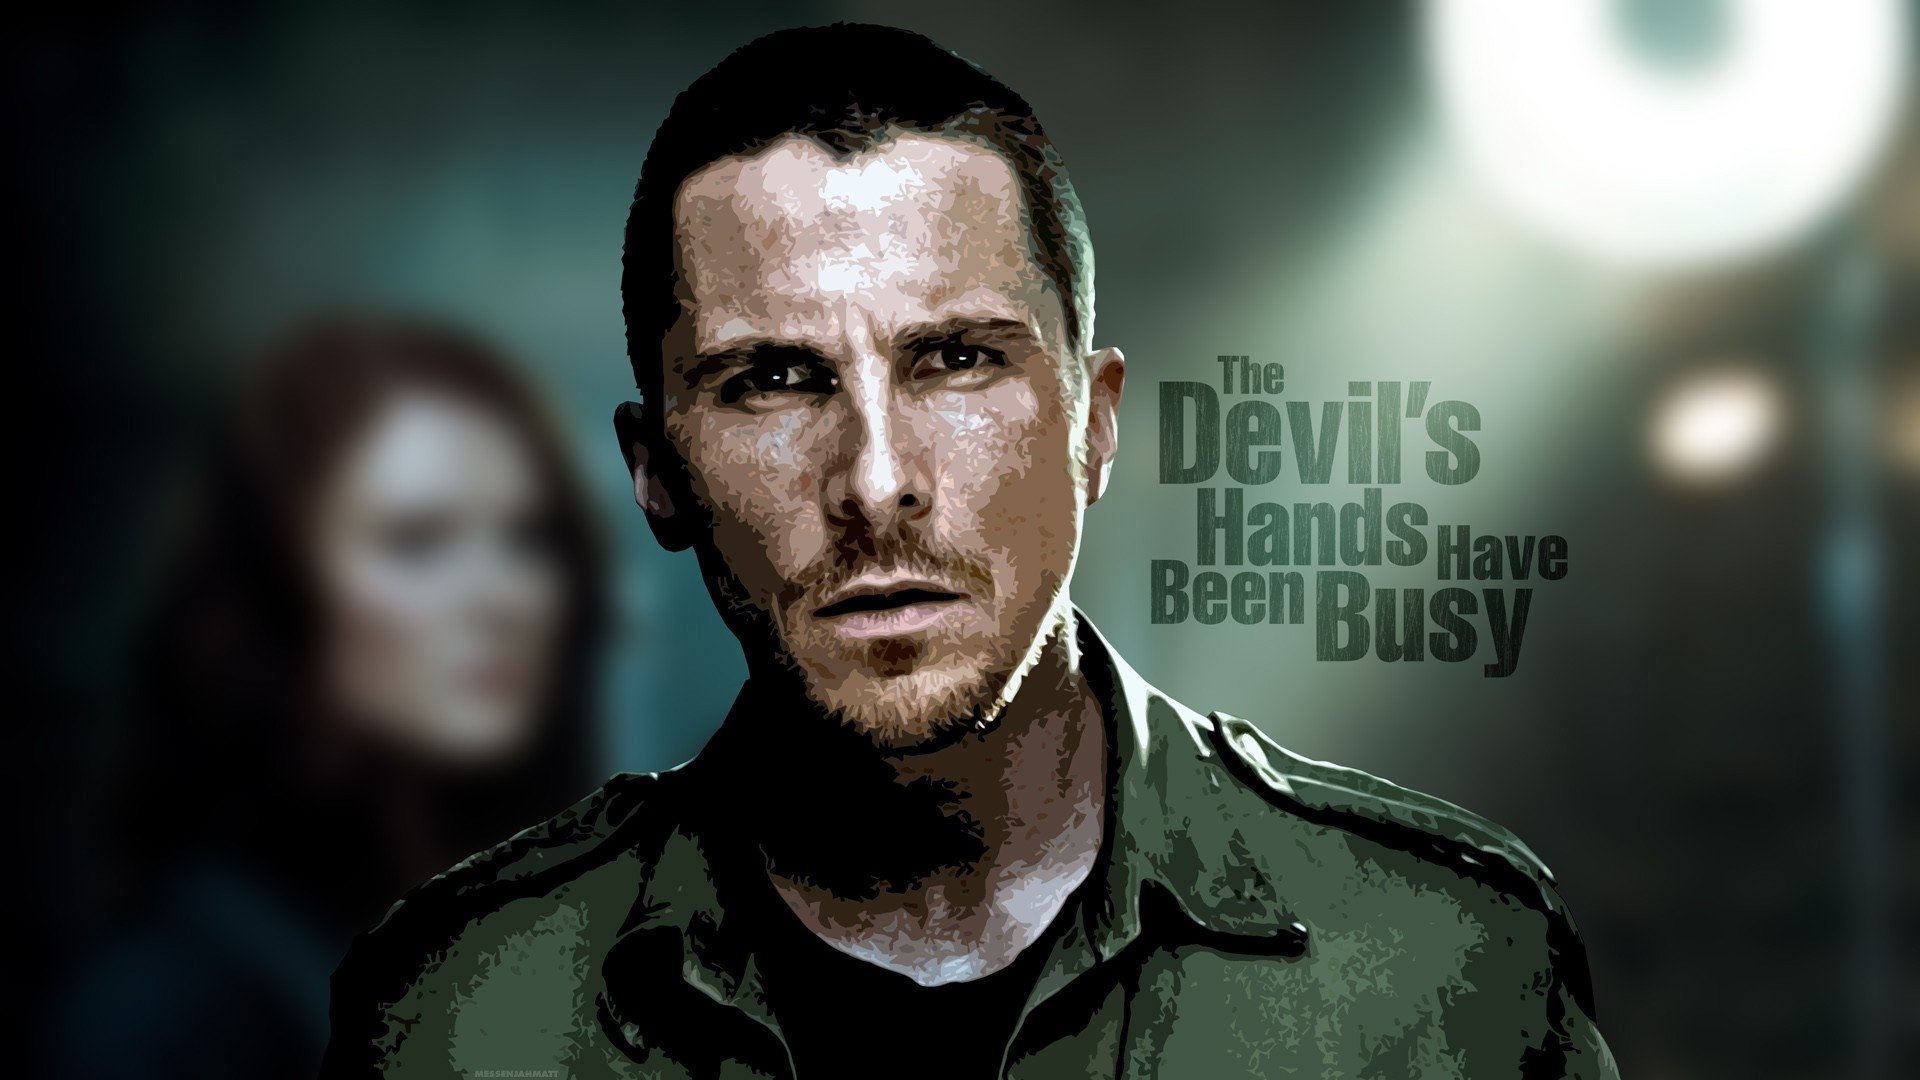 1920x1080 - Christian Bale Wallpapers 8